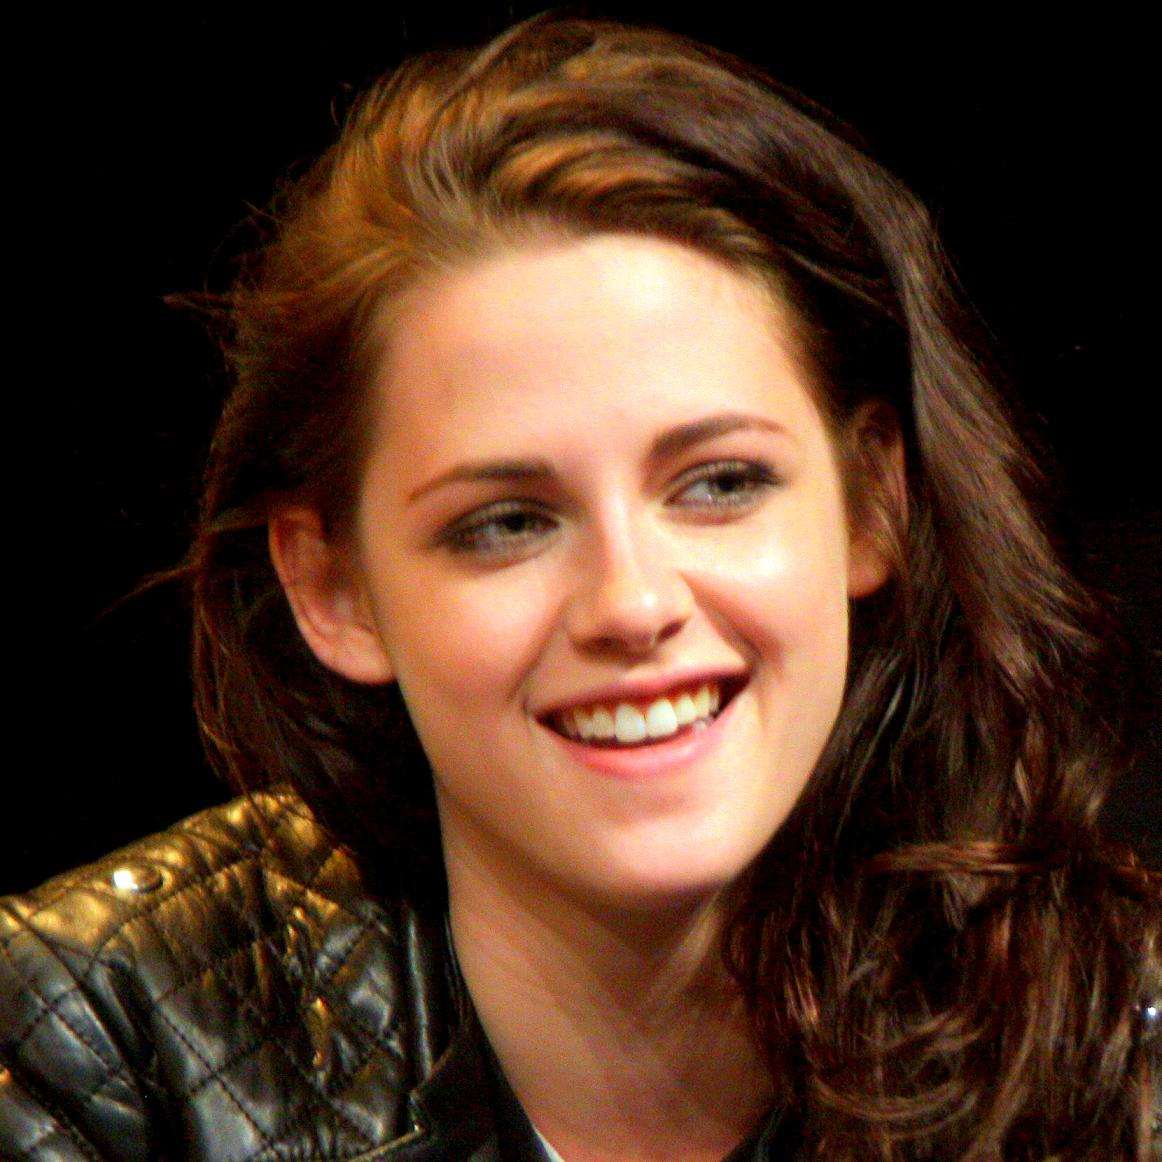 Kristen Stewart Bio, Net Worth, Facts